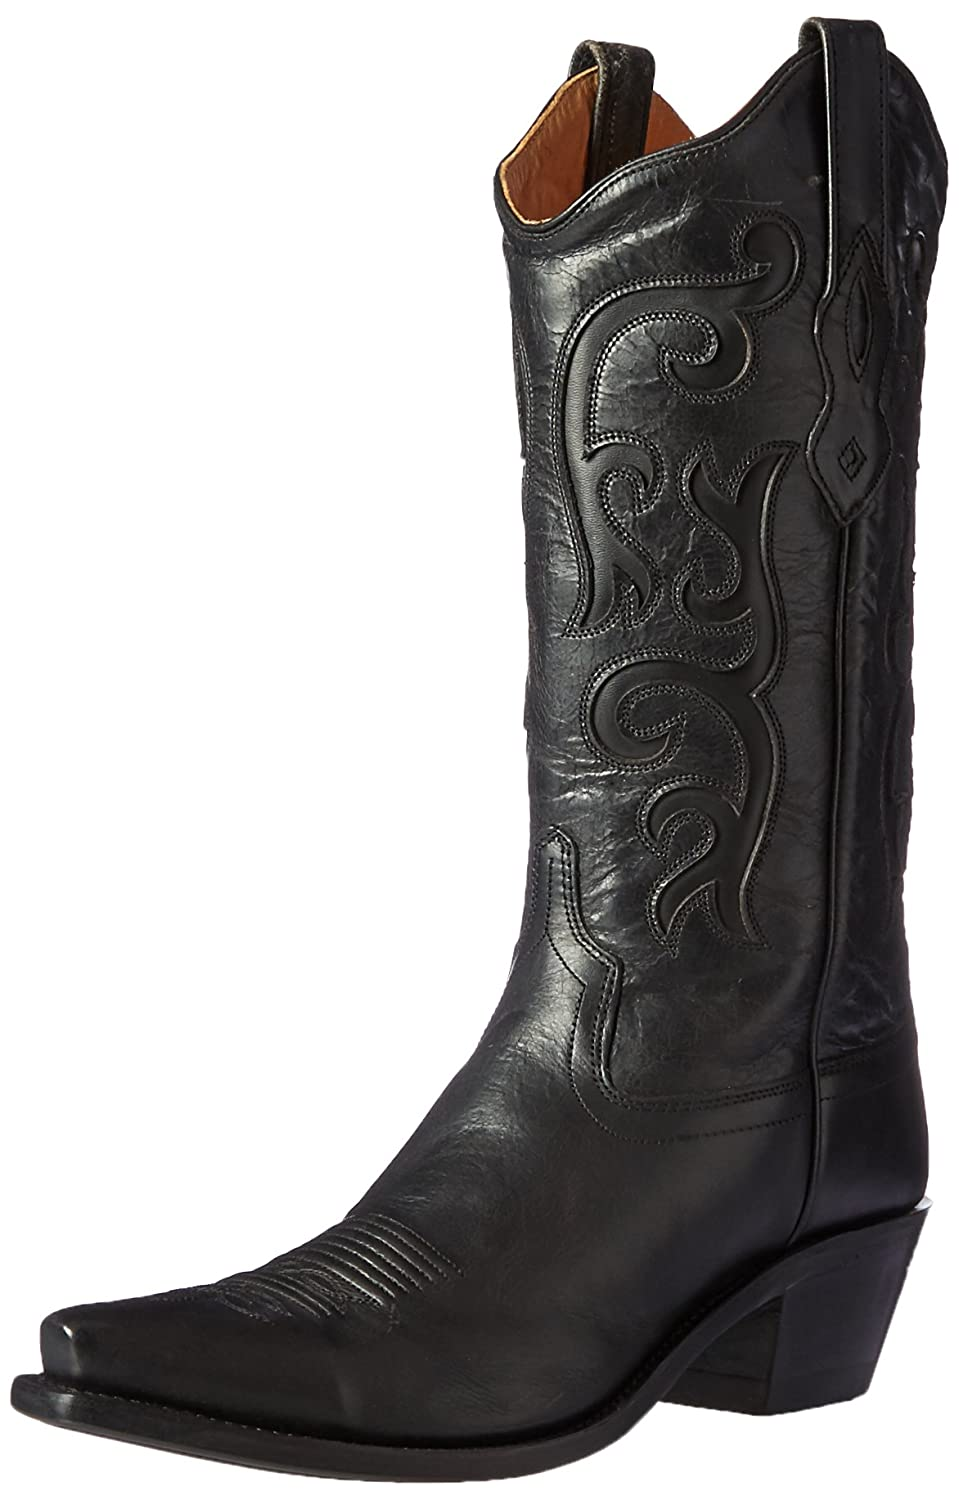 Old West Boots Womens LF1579 B00MNIIO0A 6 B(M) US|Black